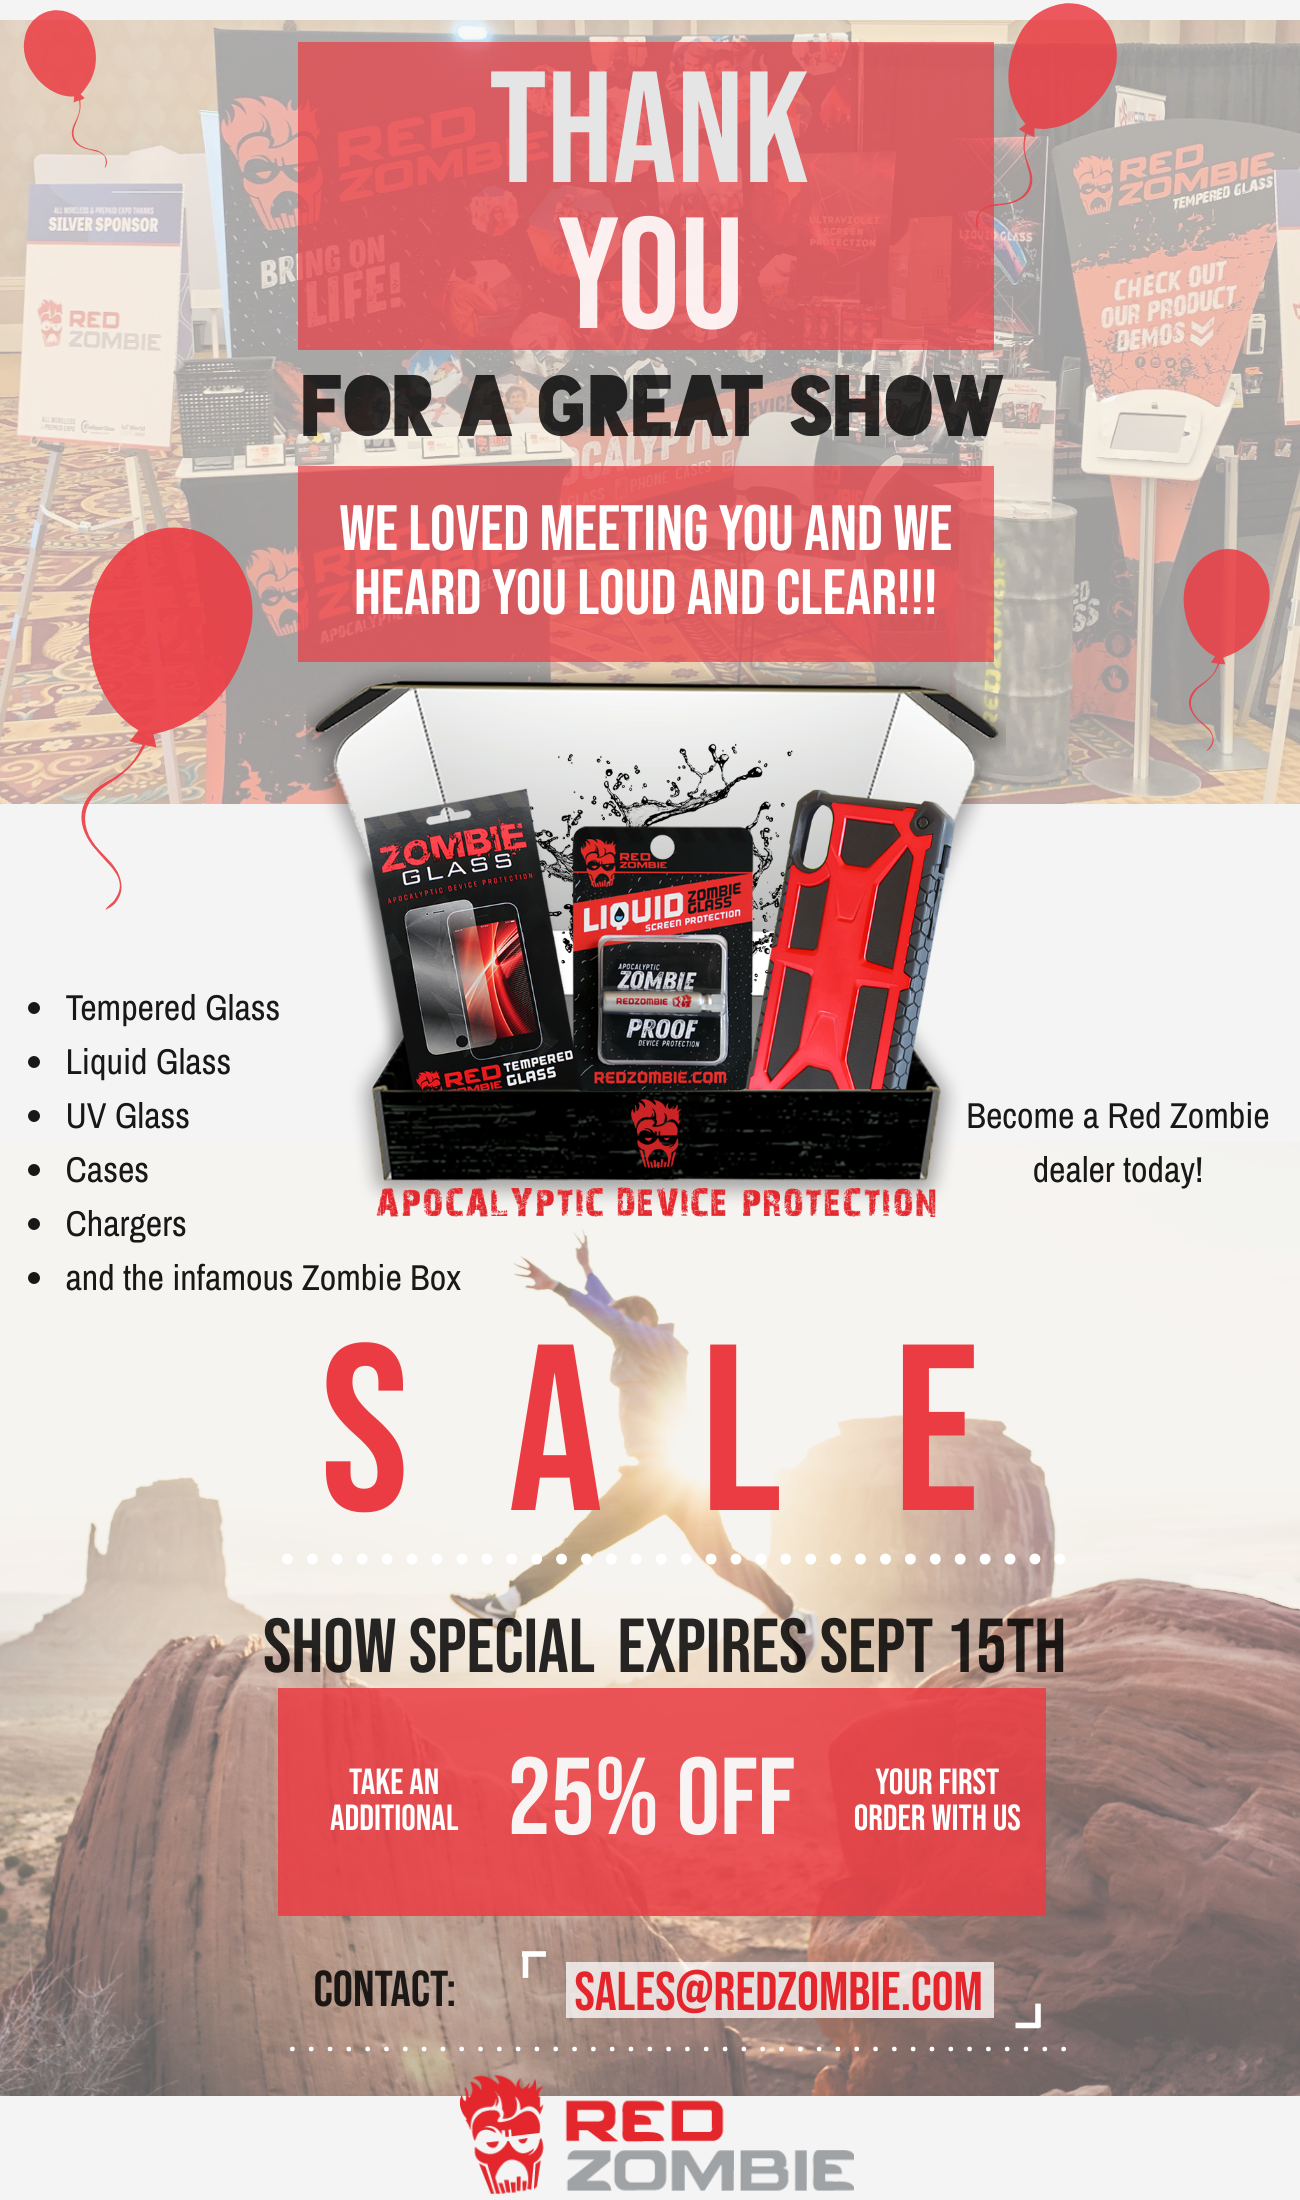 All Wireless & Prepaid Expo Red Zombie Show Special